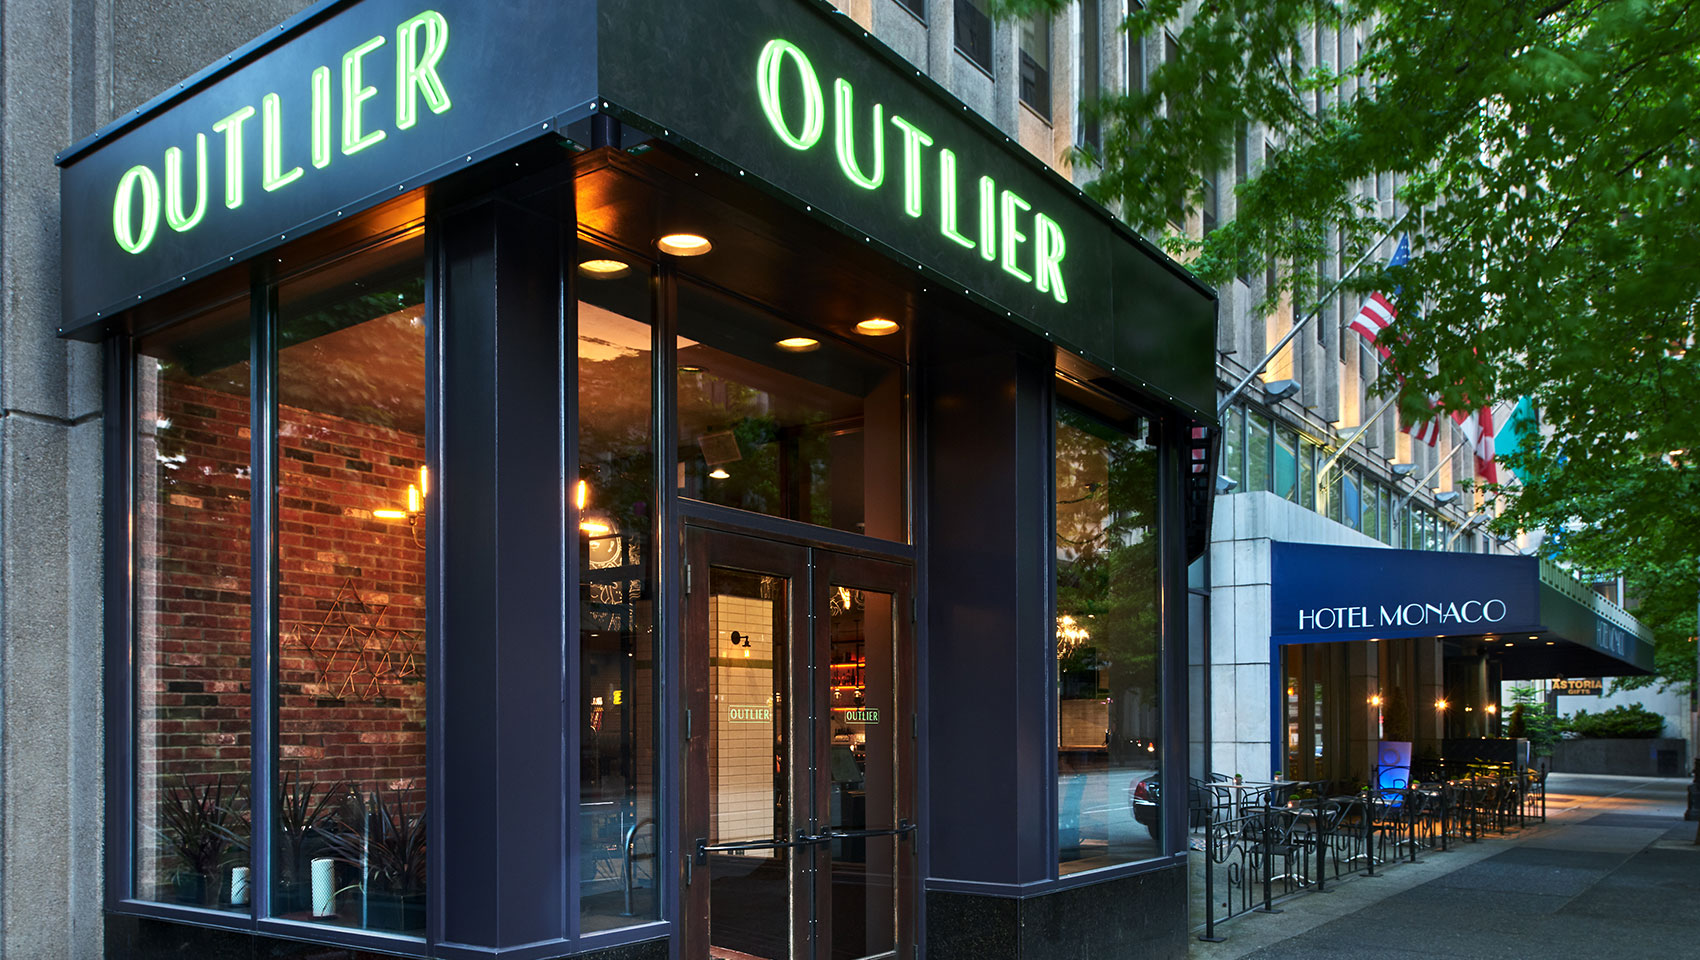 Outlier Seattle on the corner of 4th avenue